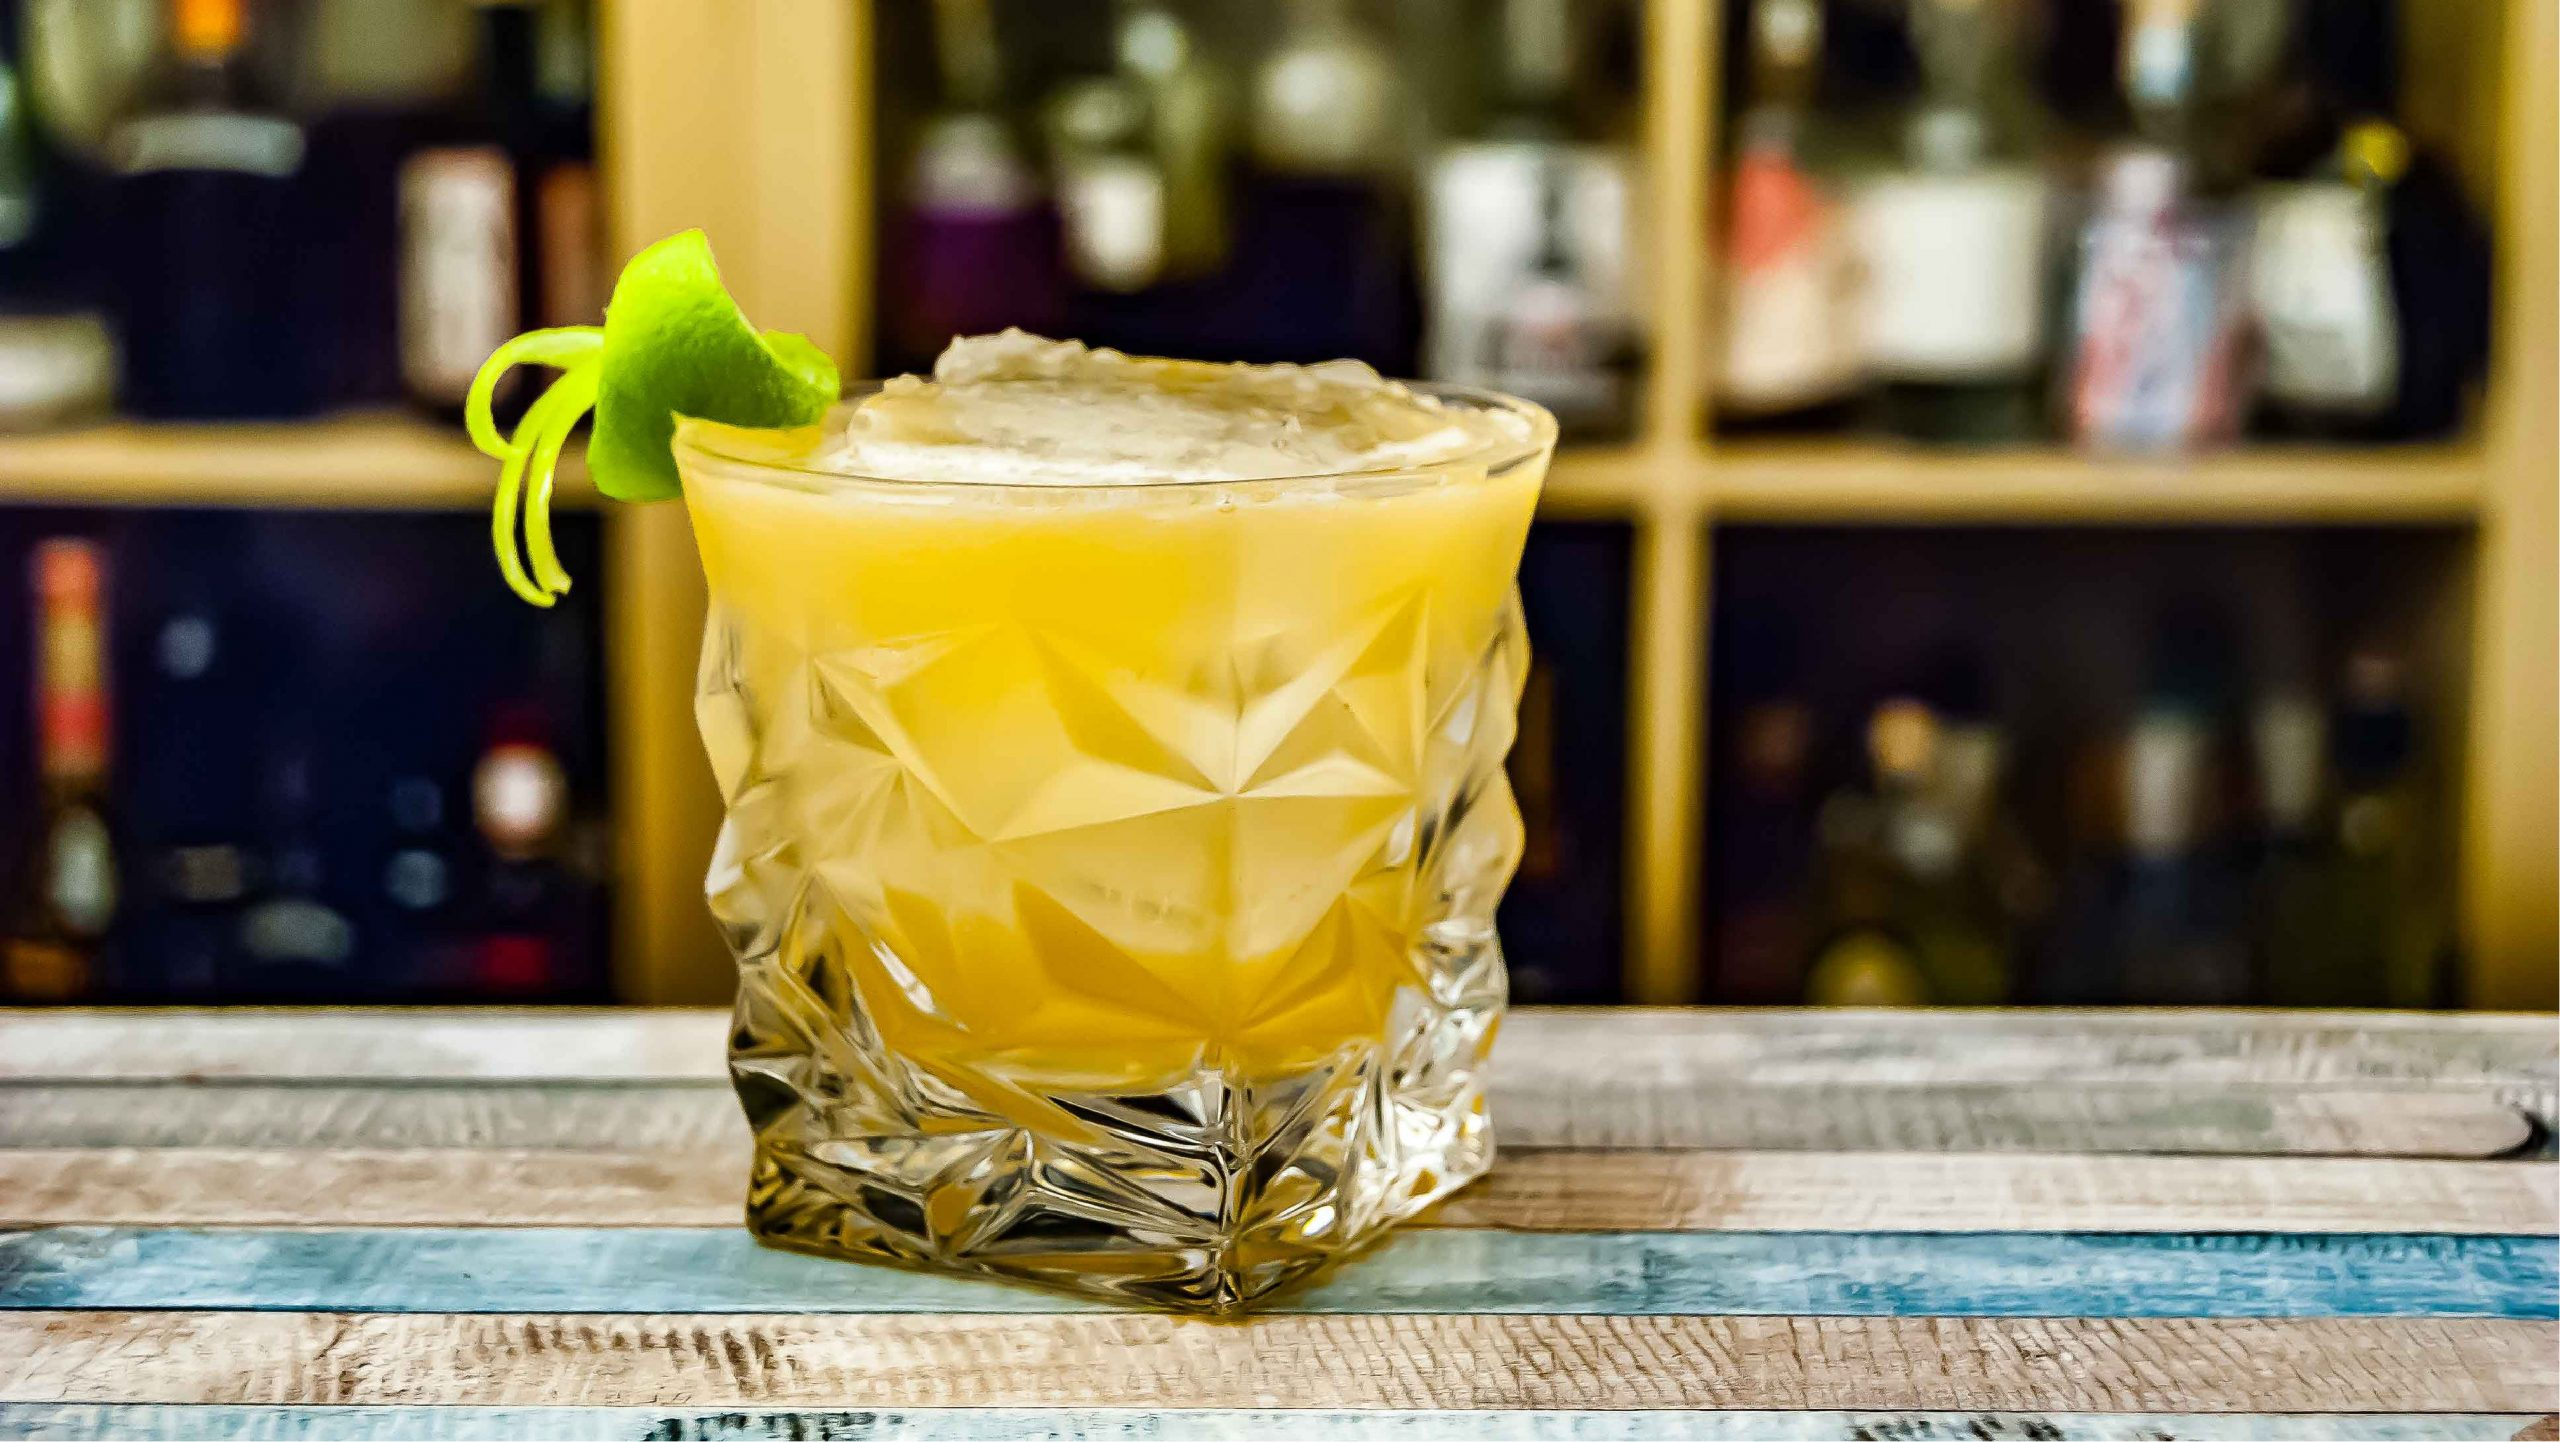 A photo of a cocktail